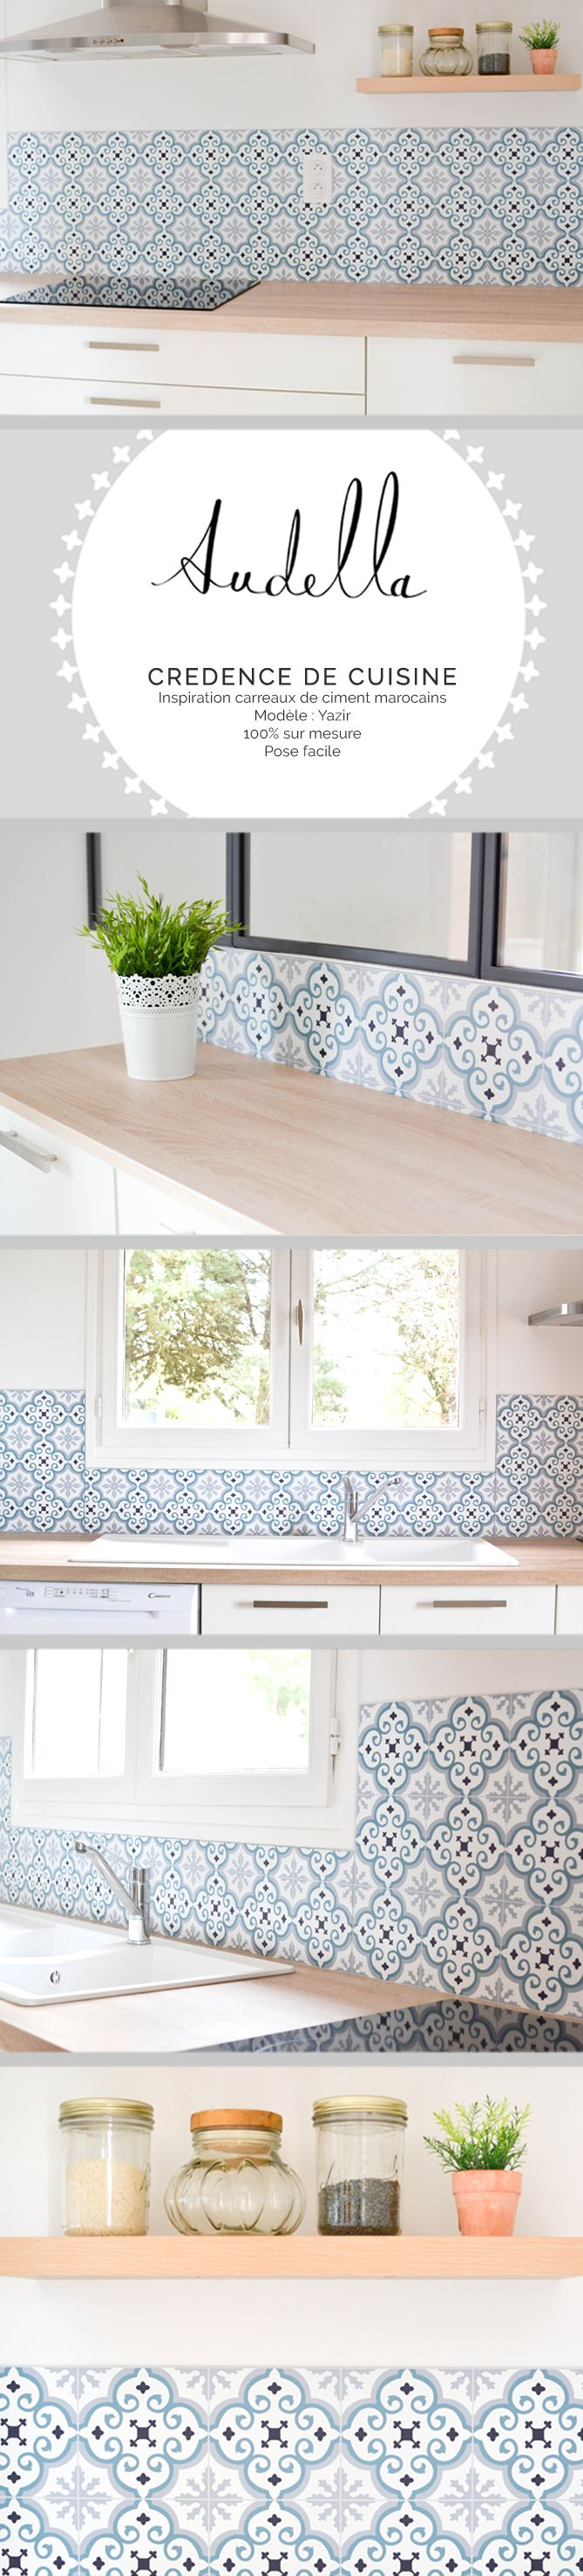 Réalisation d'une crédence de cuisine imitation carreaux de ciment, d'inspiration carreaux marocains. www.audella.fr #credence #cuisine #kitchenbacksplash #pattern #graphic #cementtiles #carreauxdeciment #kitchen #wood #white #light